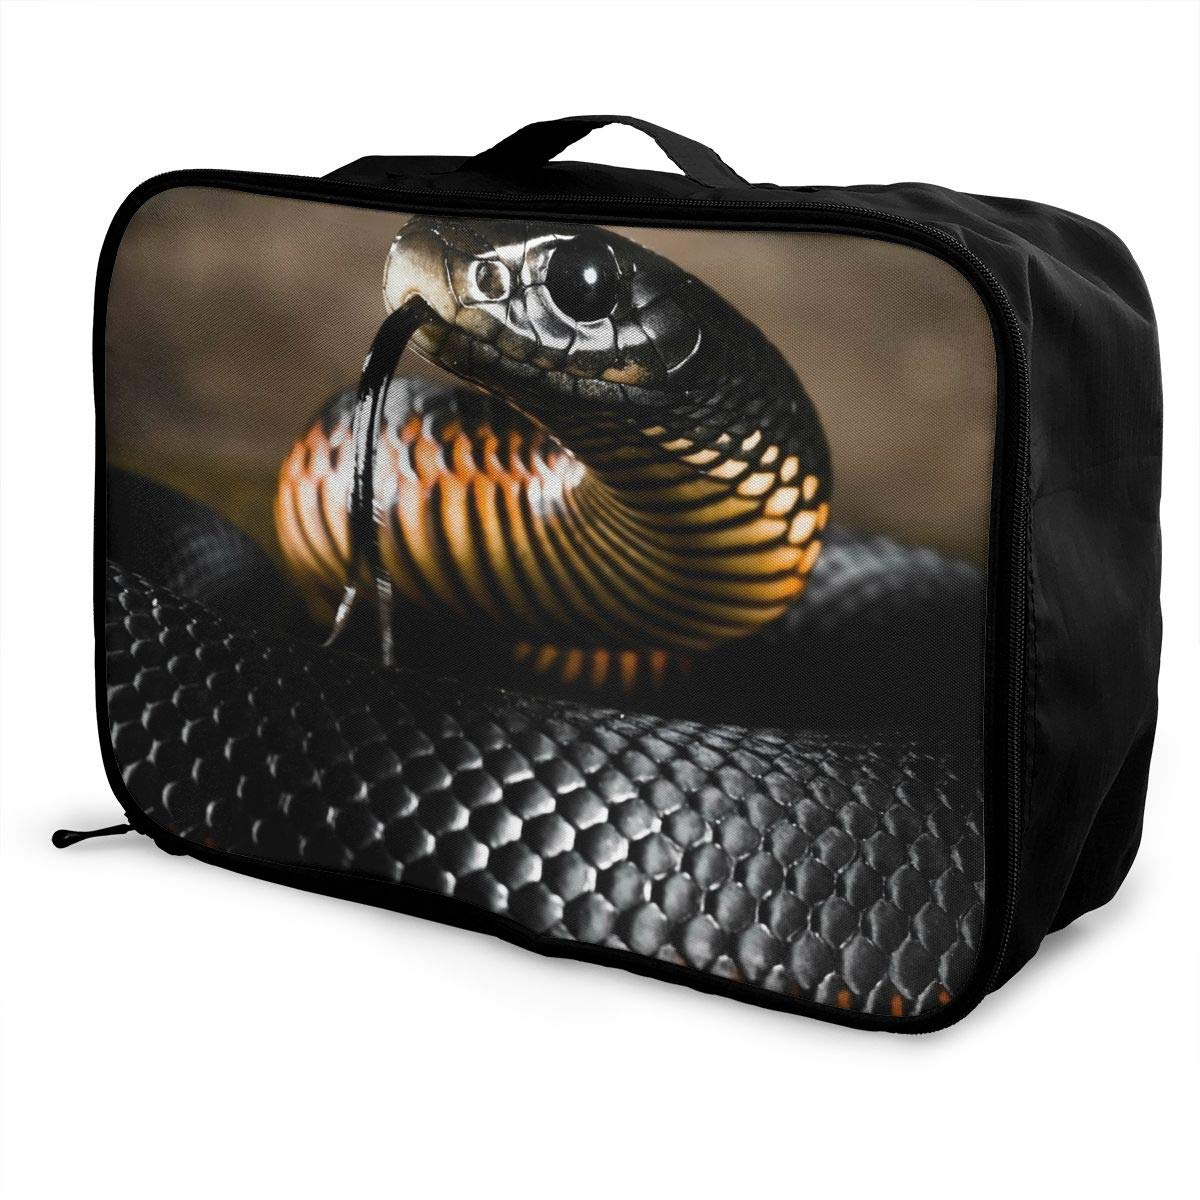 Travel Luggage Duffle Bag Lightweight Portable Handbag Animals Black Snake Print Large Capacity Waterproof Foldable Storage Tote